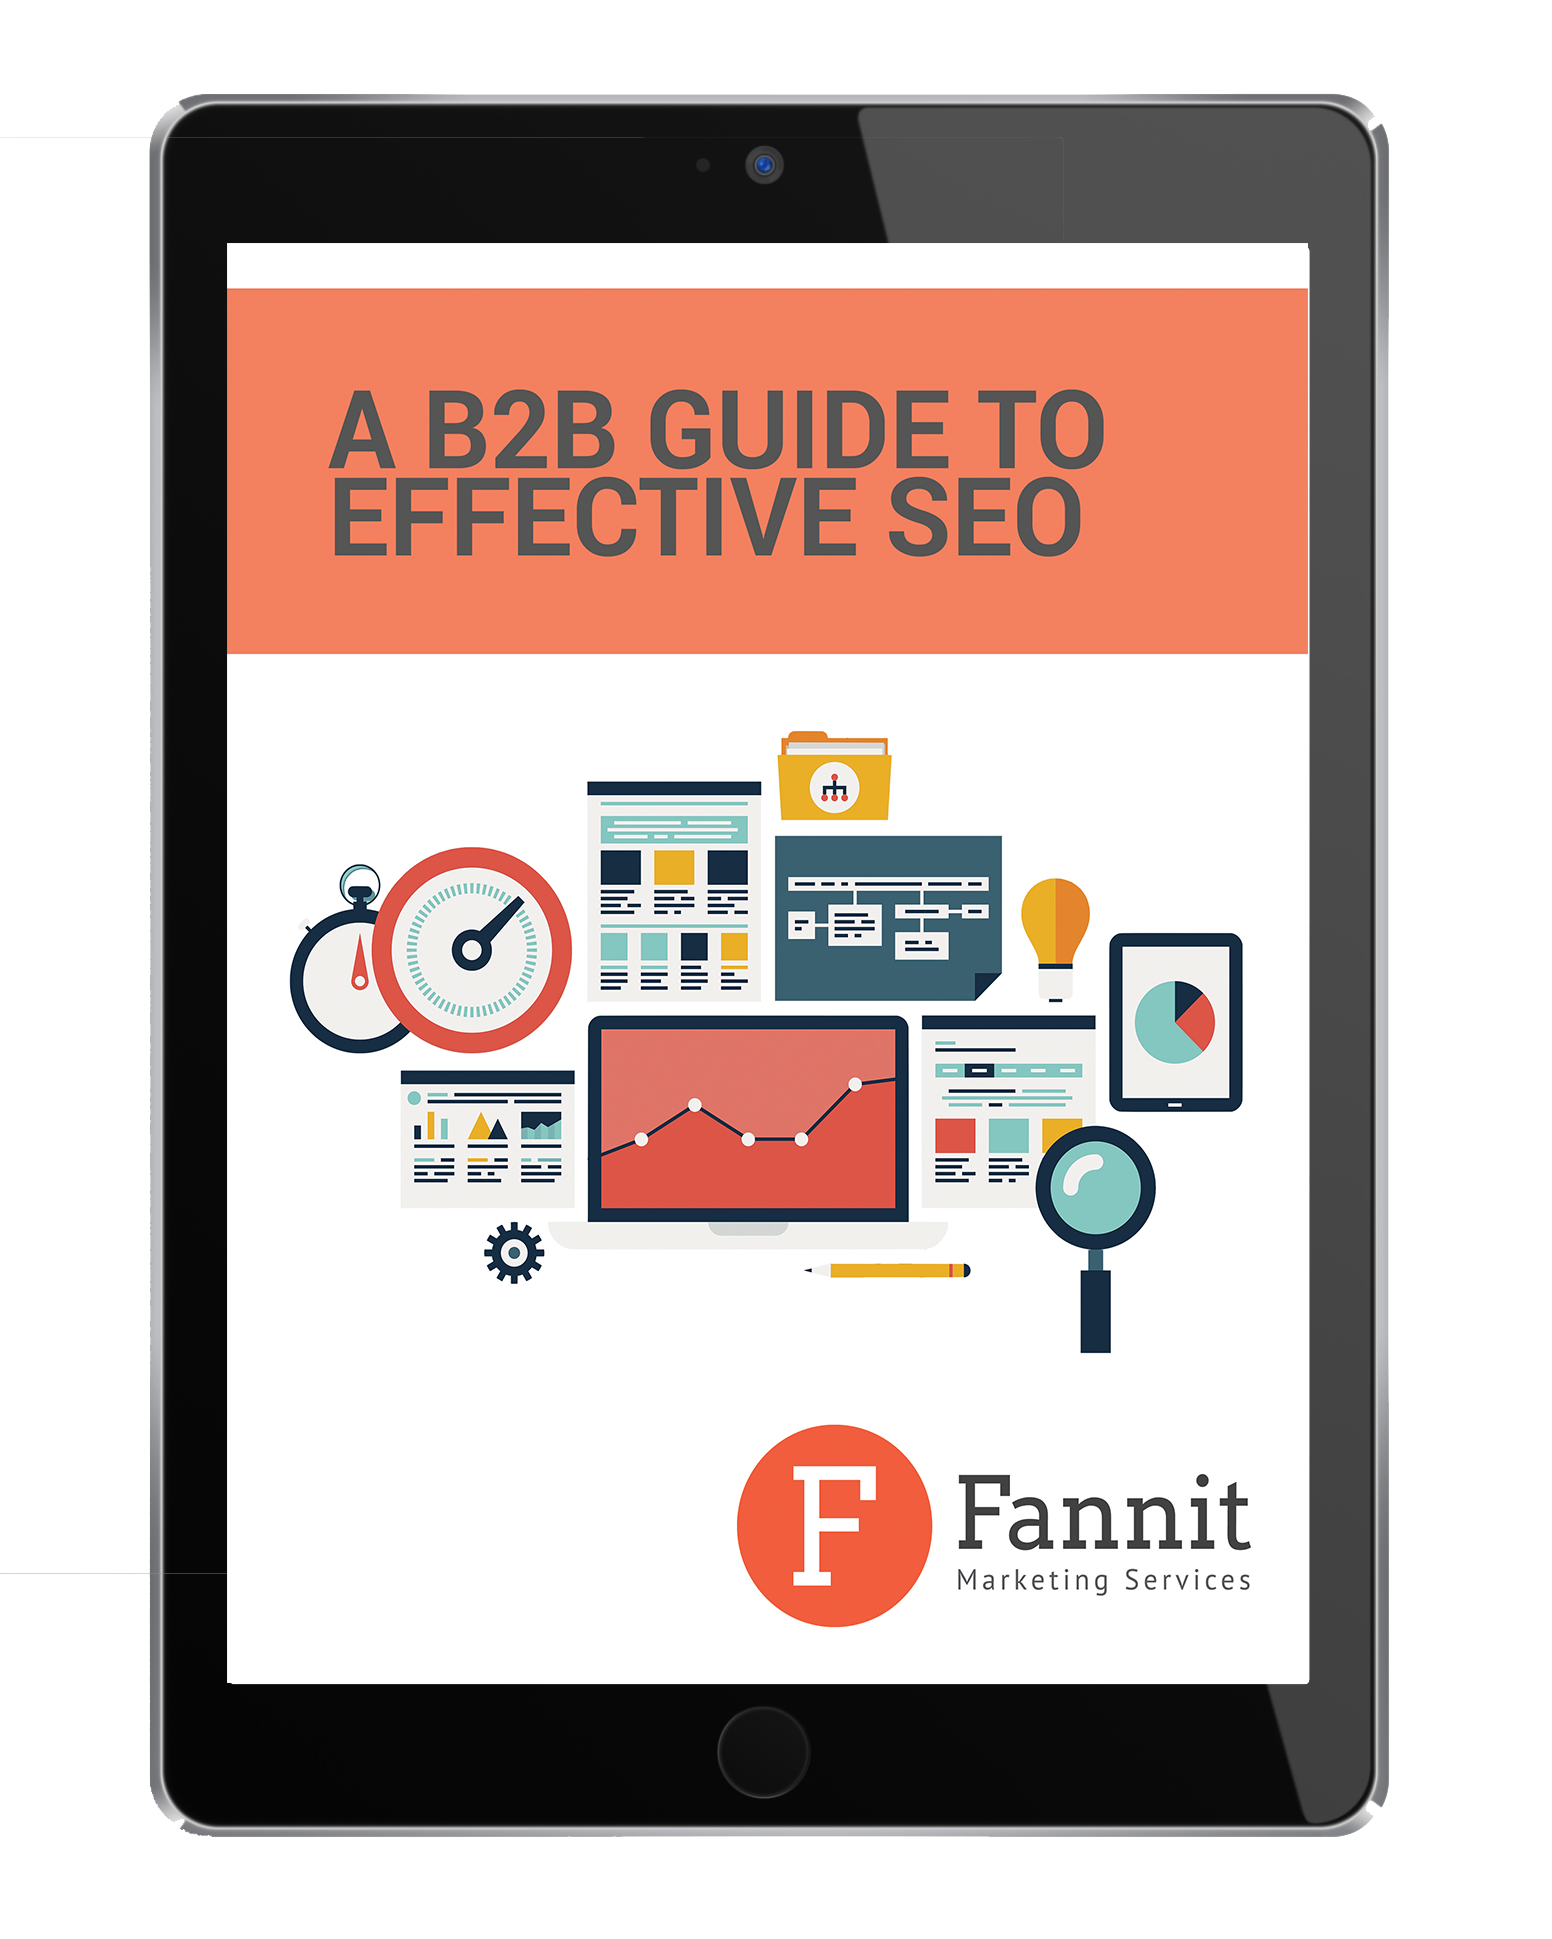 Free eBook Download: A B2B Guide to Effective SEO